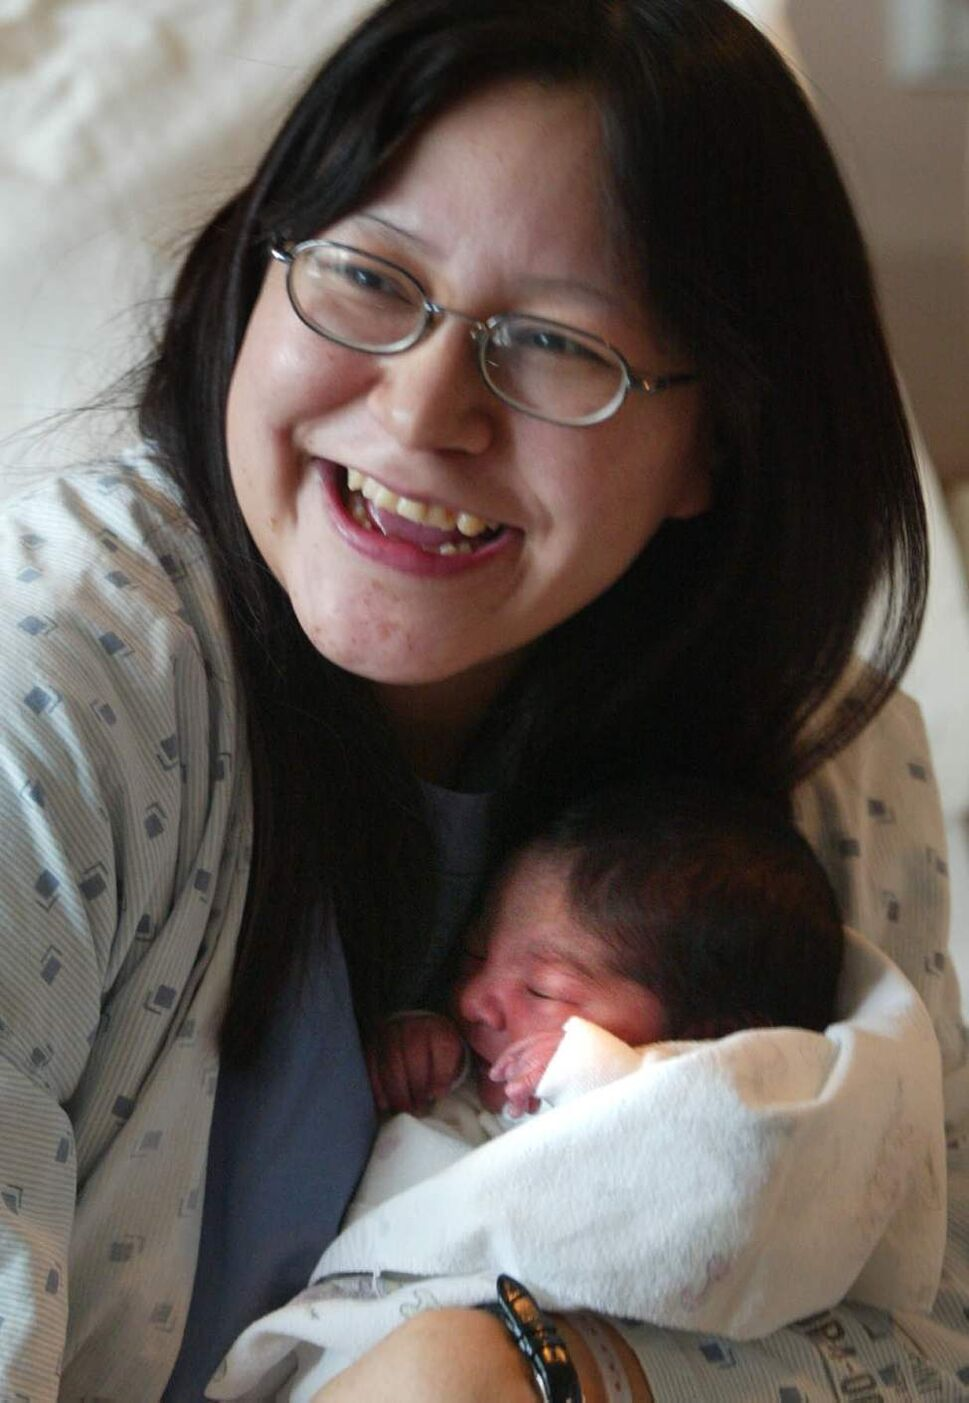 Medivac 'stork' brings New Year's baby Kristen Monias was flown 600 km to give birth to her fifth child, Chanel, at St. Boniface hospital yesterday. (Wayne Glowacki / Winnipeg Free Press)